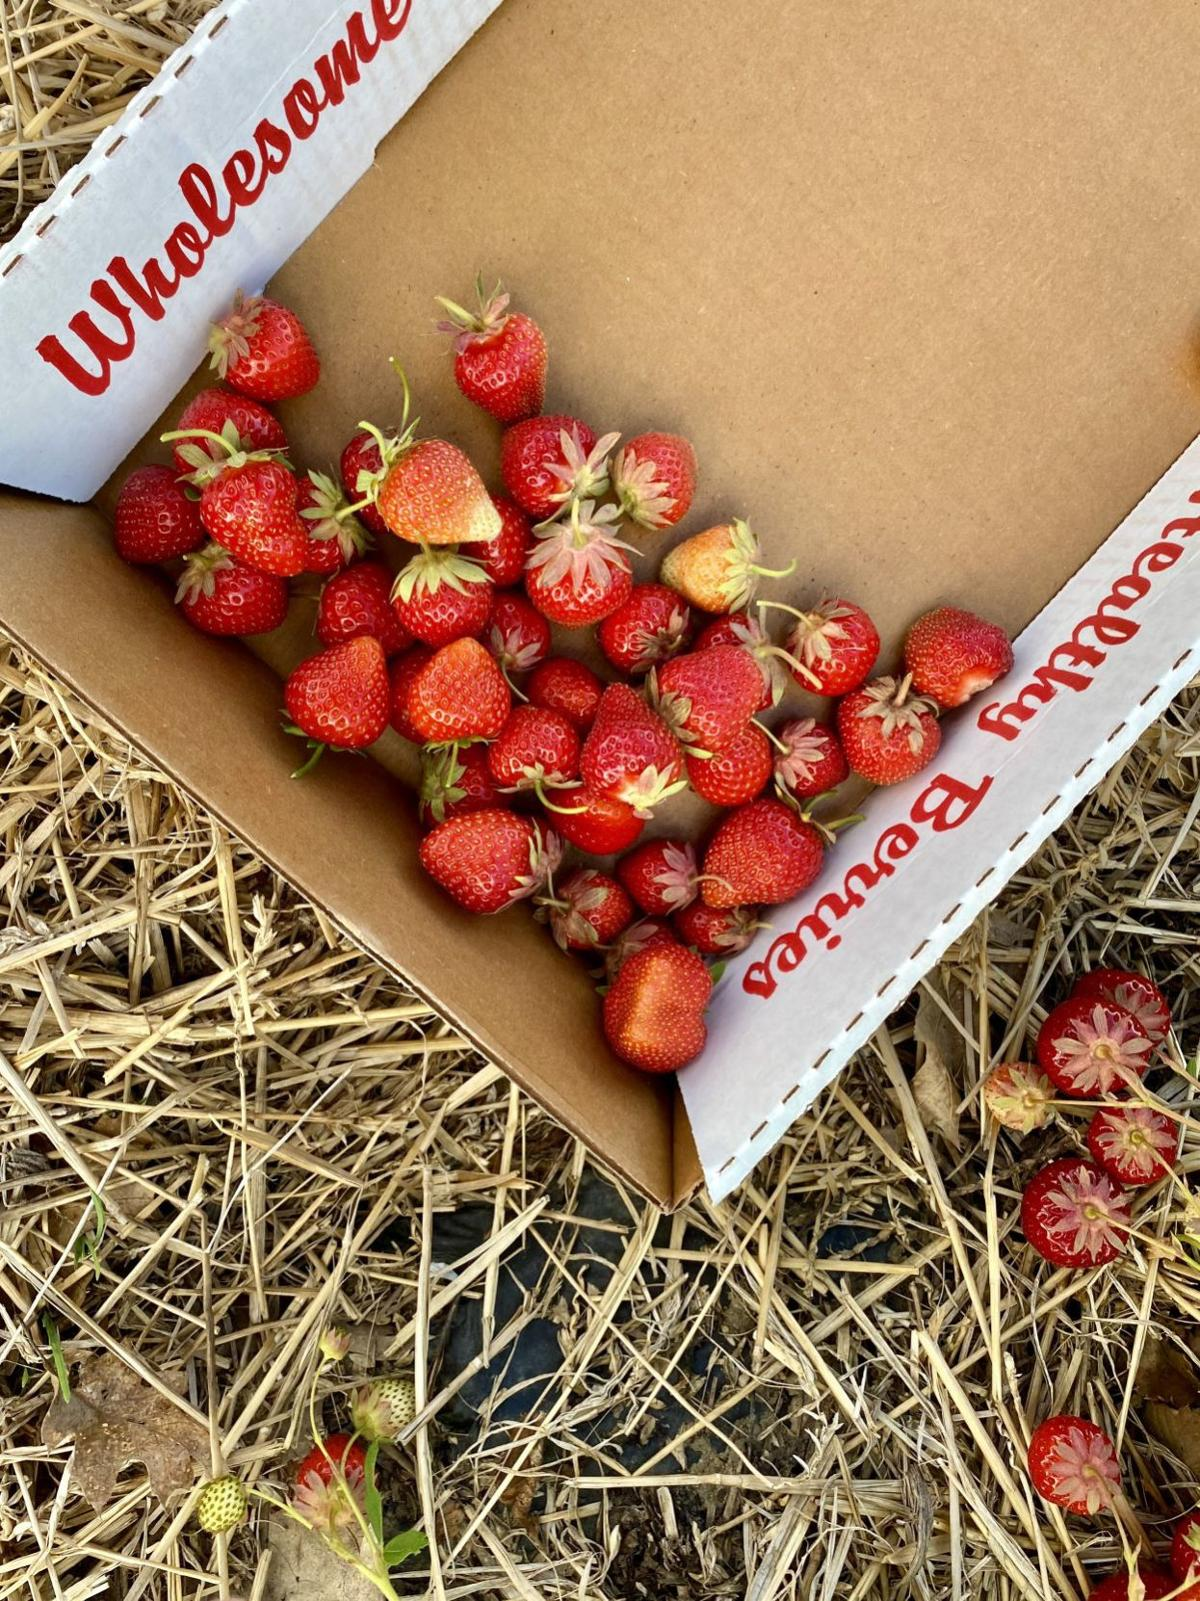 Pick-your-own strawberries